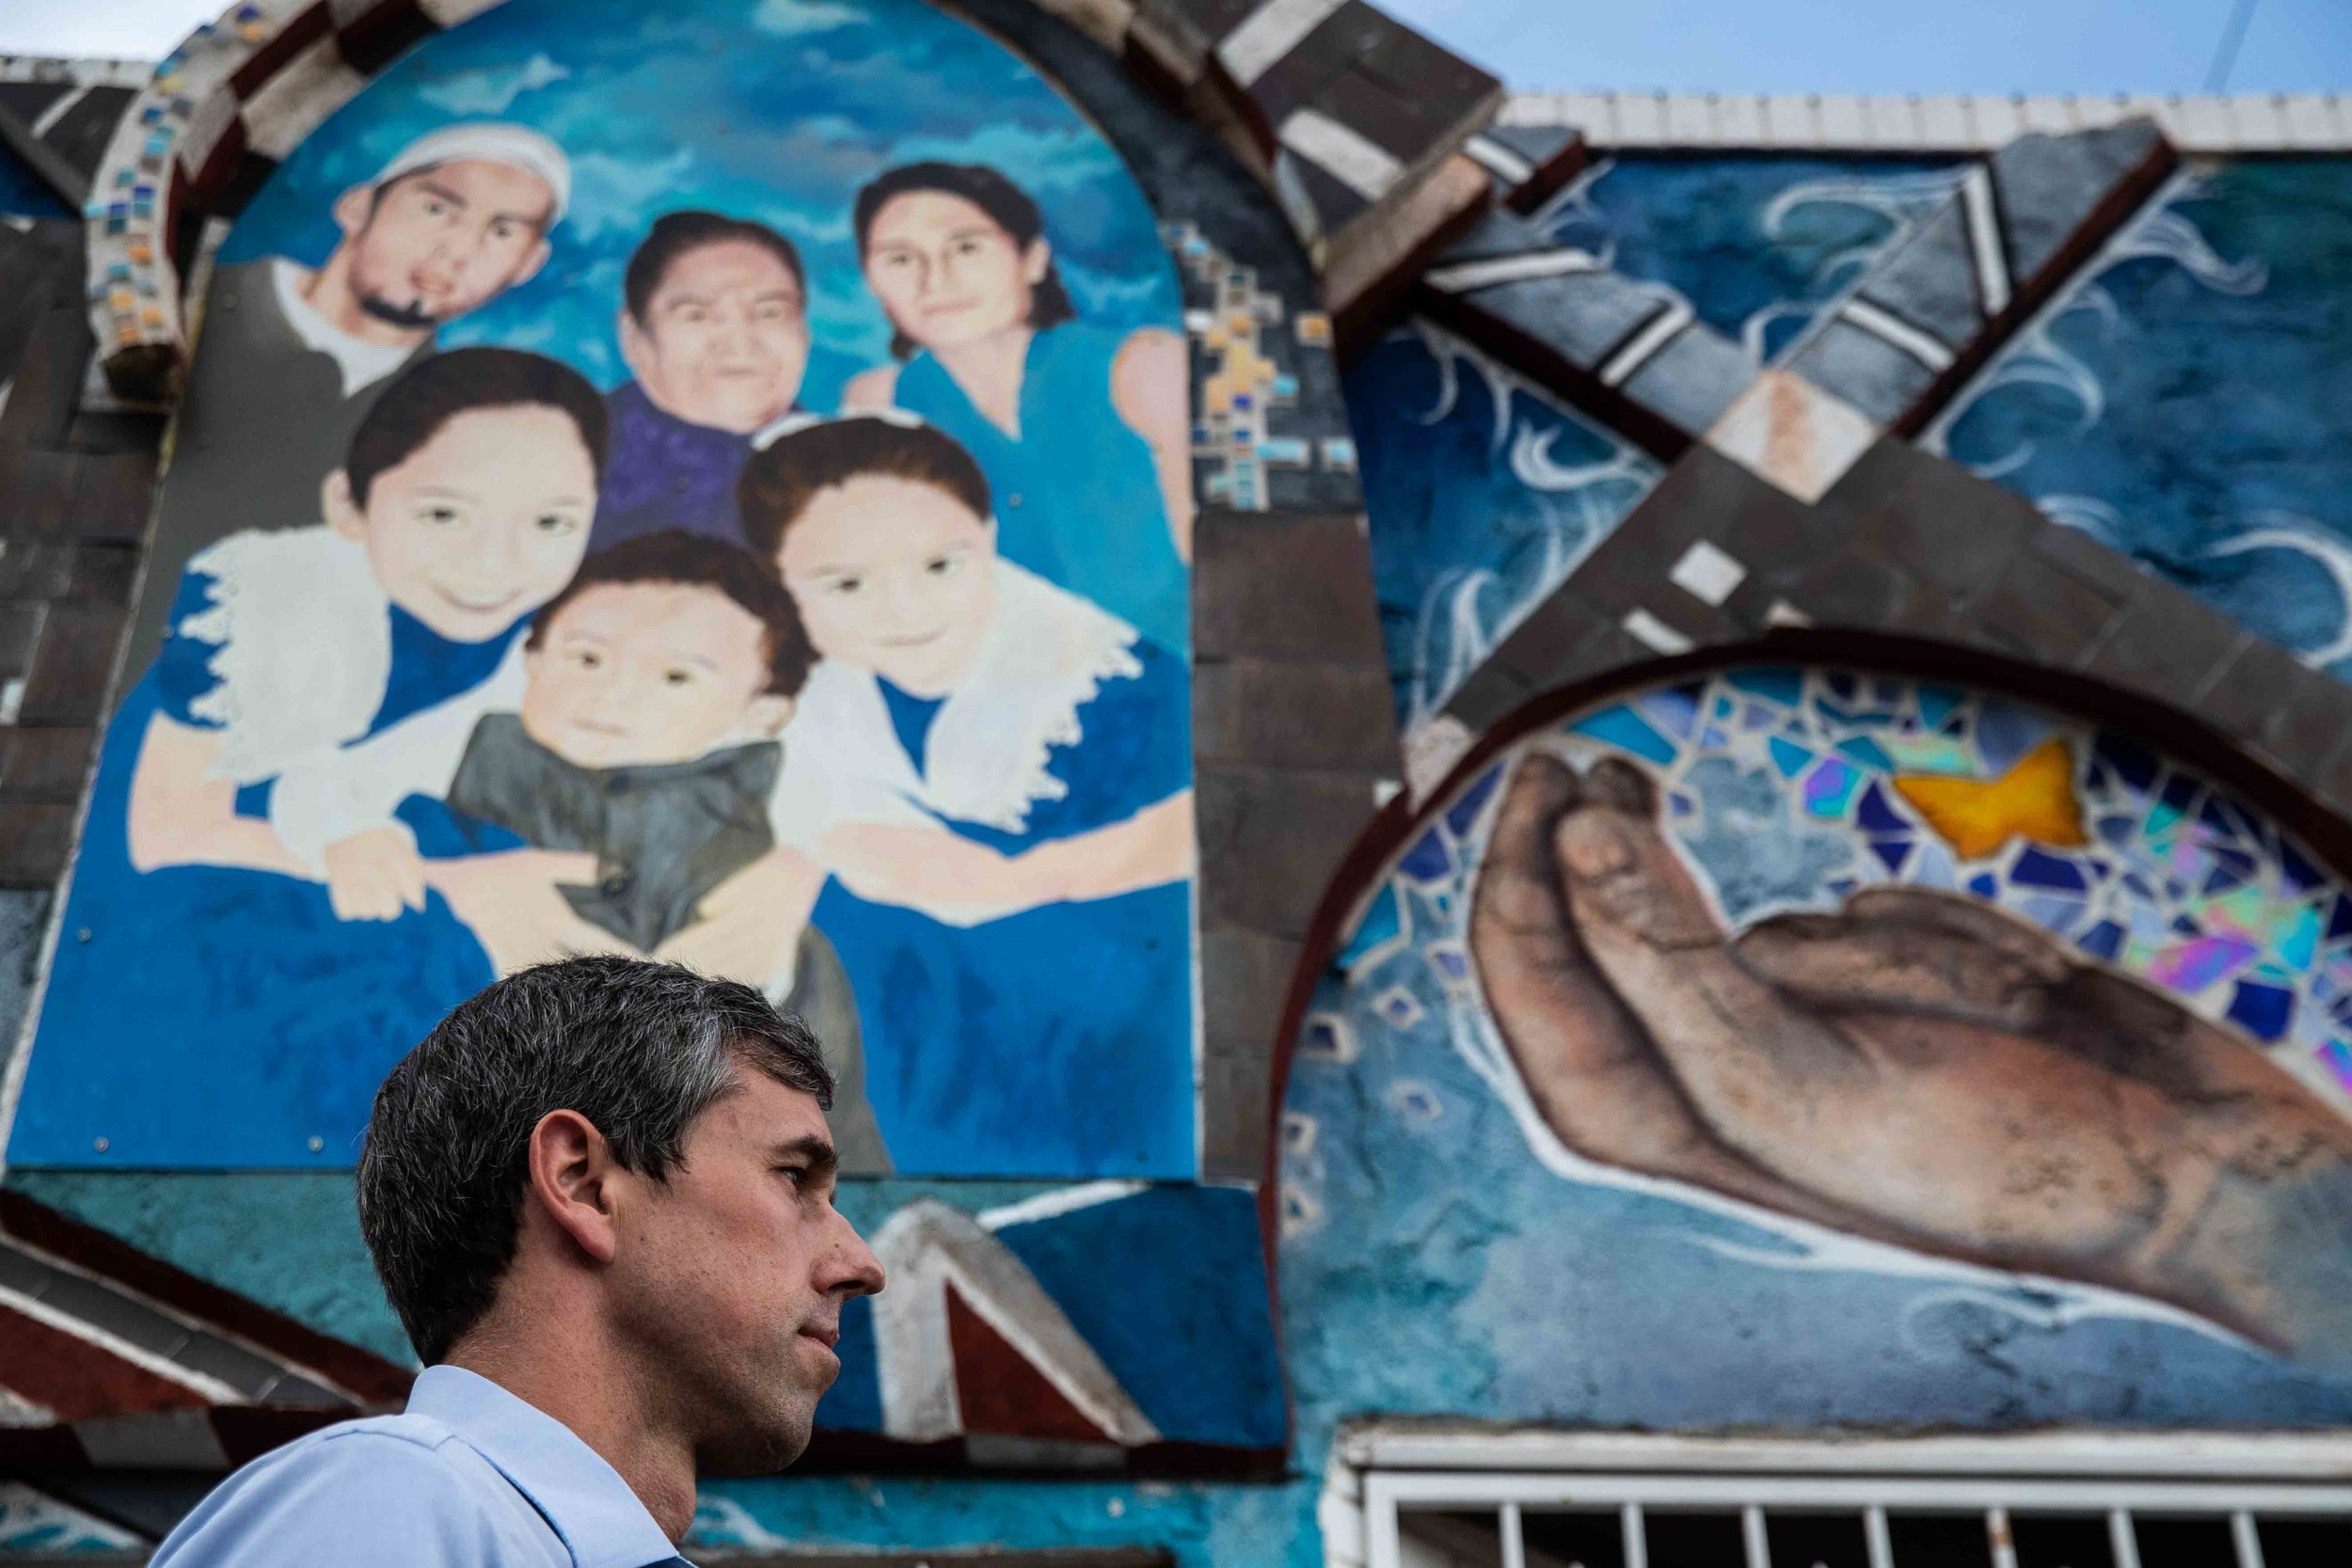 Democratic presidential candidate Beto O'Rourke walks in front of a mural at Yandell Dr. during a silent march in honor to the victims of a mass shooting occurred in Walmart on Satuday morning in El Paso on Sunday, August 4, 2019.